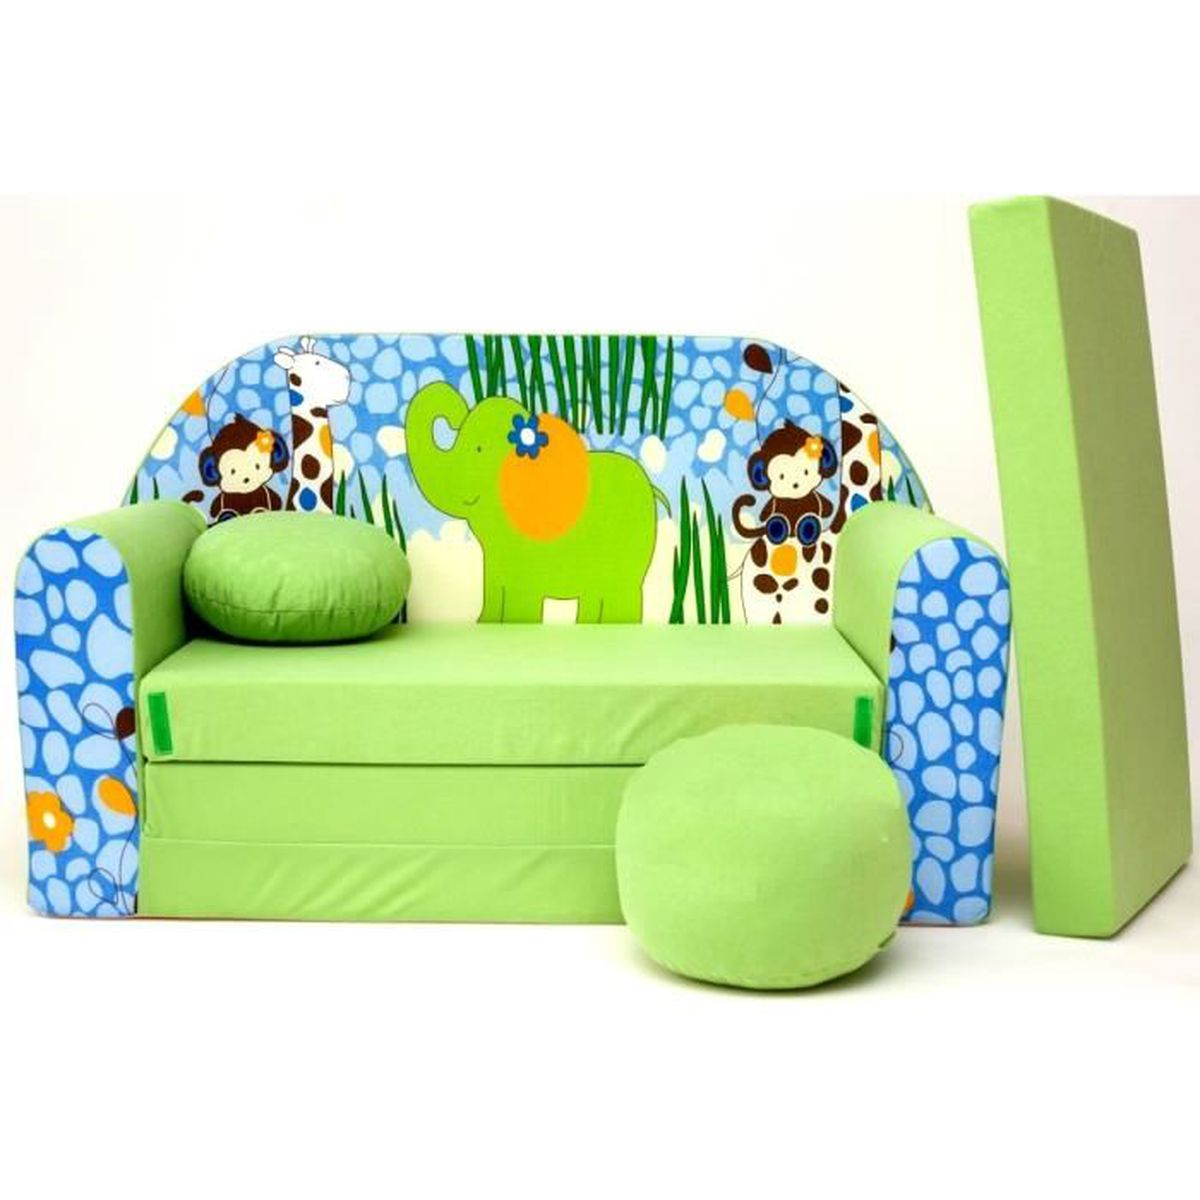 Canape sofa enfant 2 places convertible zoo afrique for Canape enfant 2 places